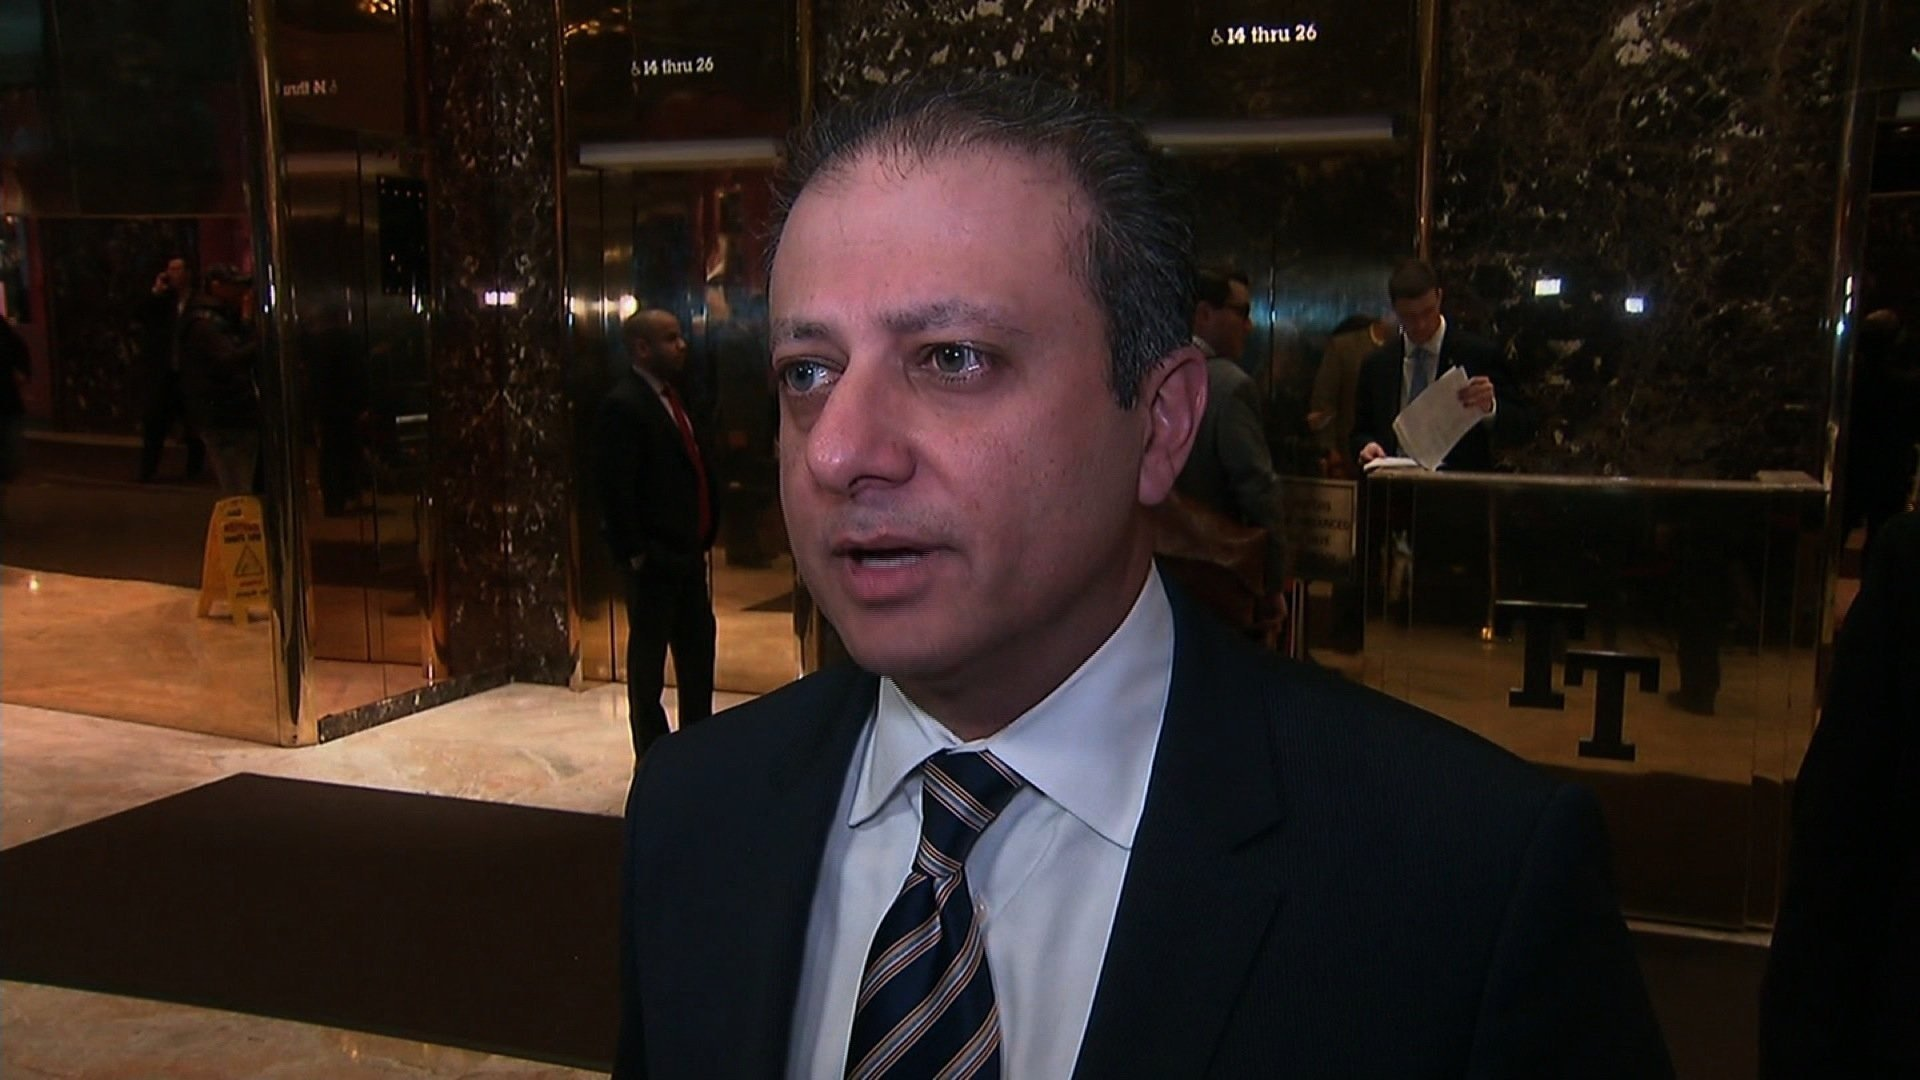 Preet Bharara joining CNN as a senior legal analyst